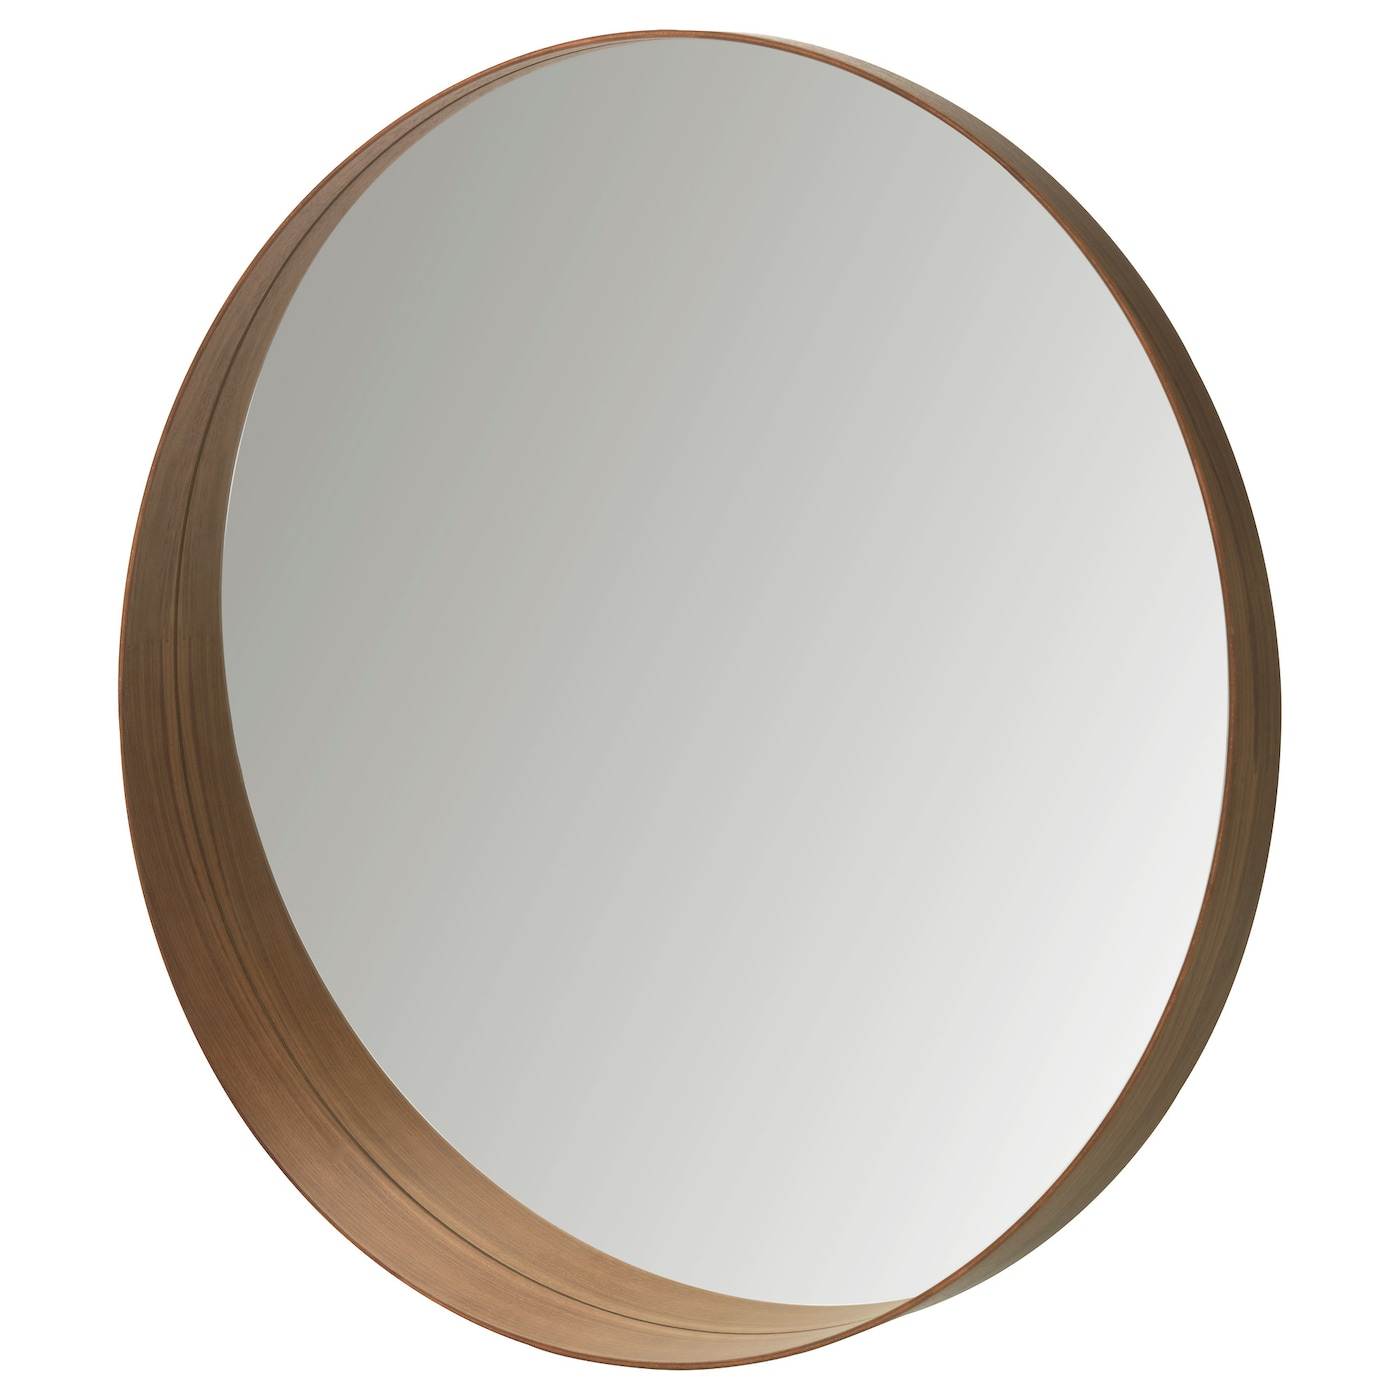 Round mirrors ikea ireland dublin for Miroir 90x90